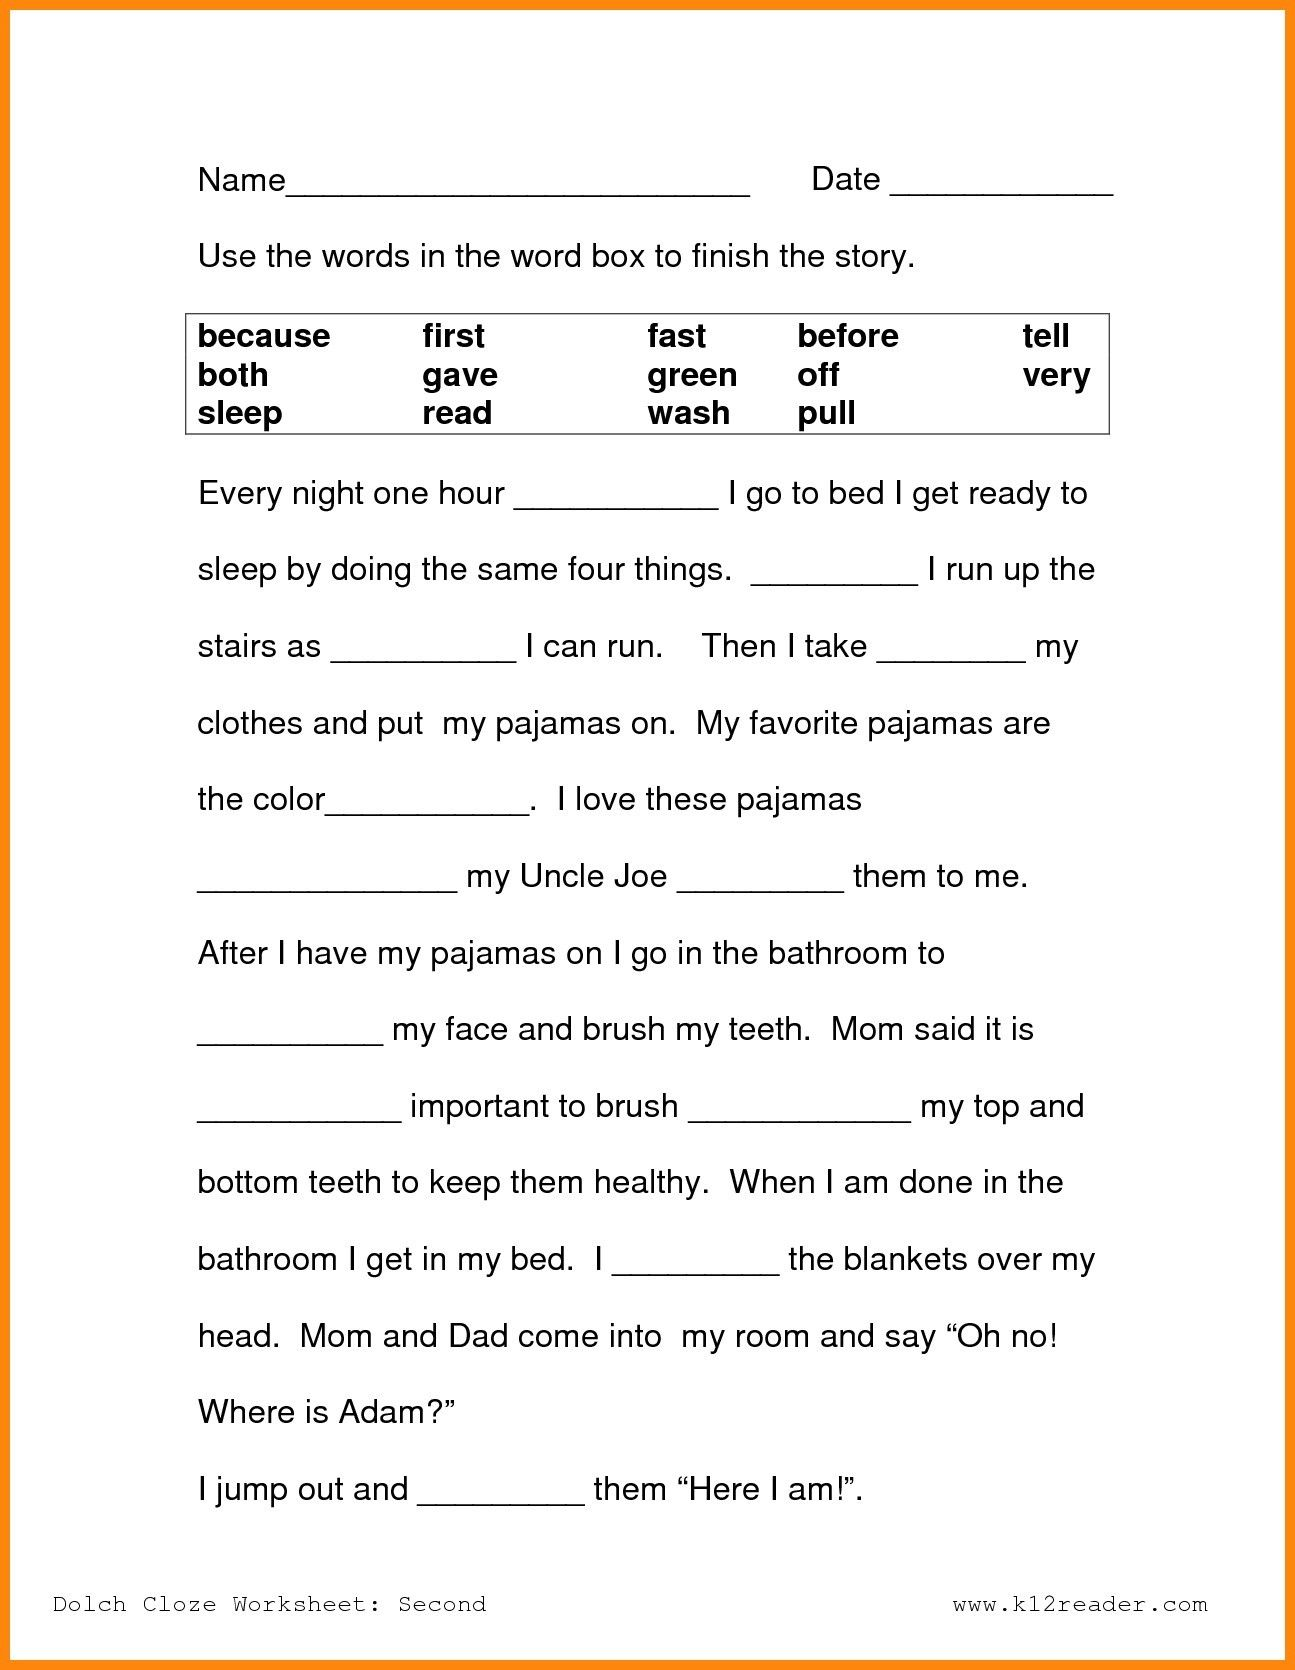 - Greek Mythology Worksheet For 5th Grade Printable Worksheets And